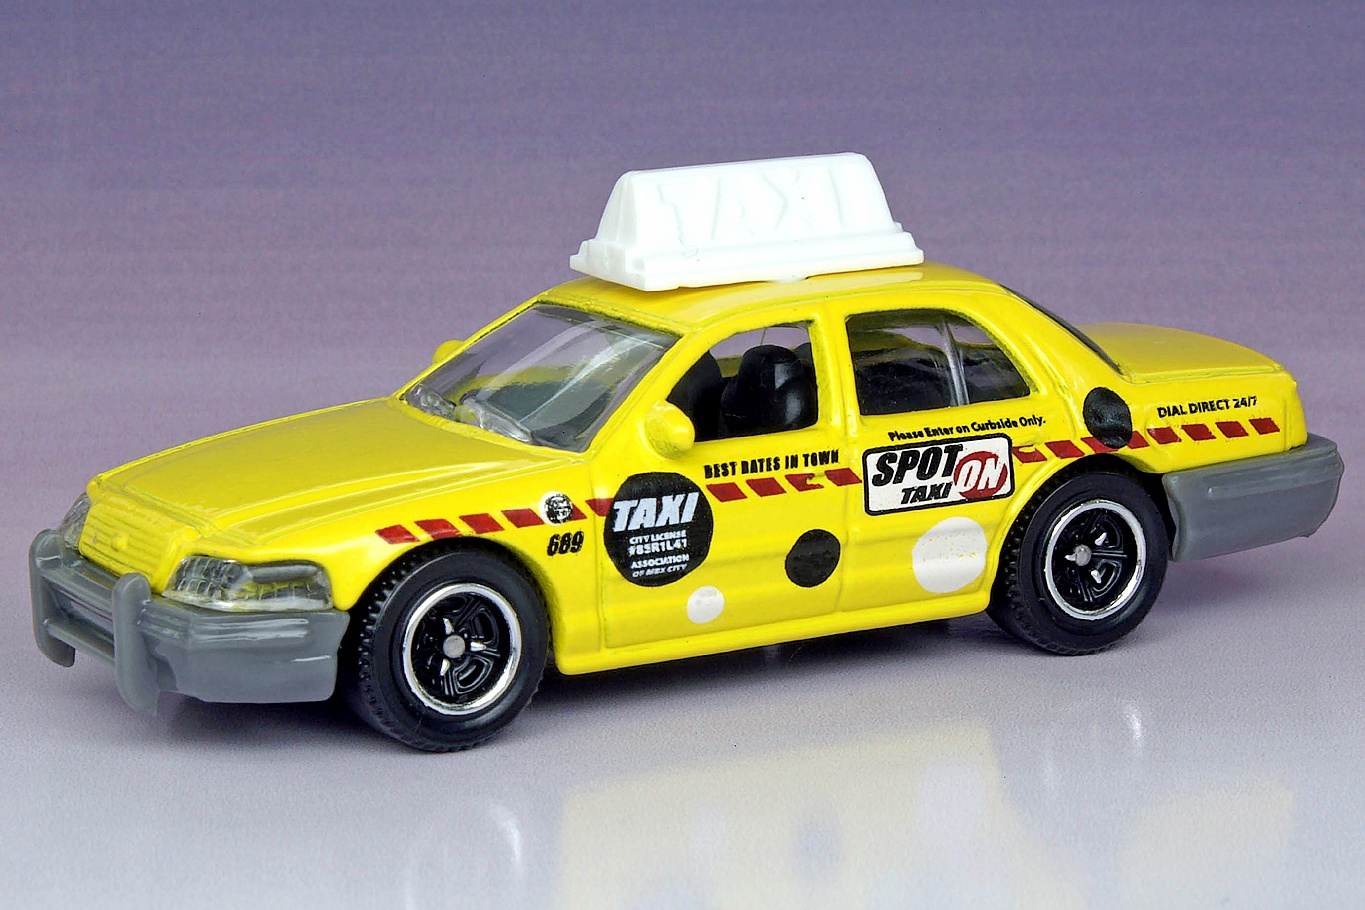 2019 Express Van >> 2006 Ford Crown Victoria Taxi | Matchbox Cars Wiki | FANDOM powered by Wikia